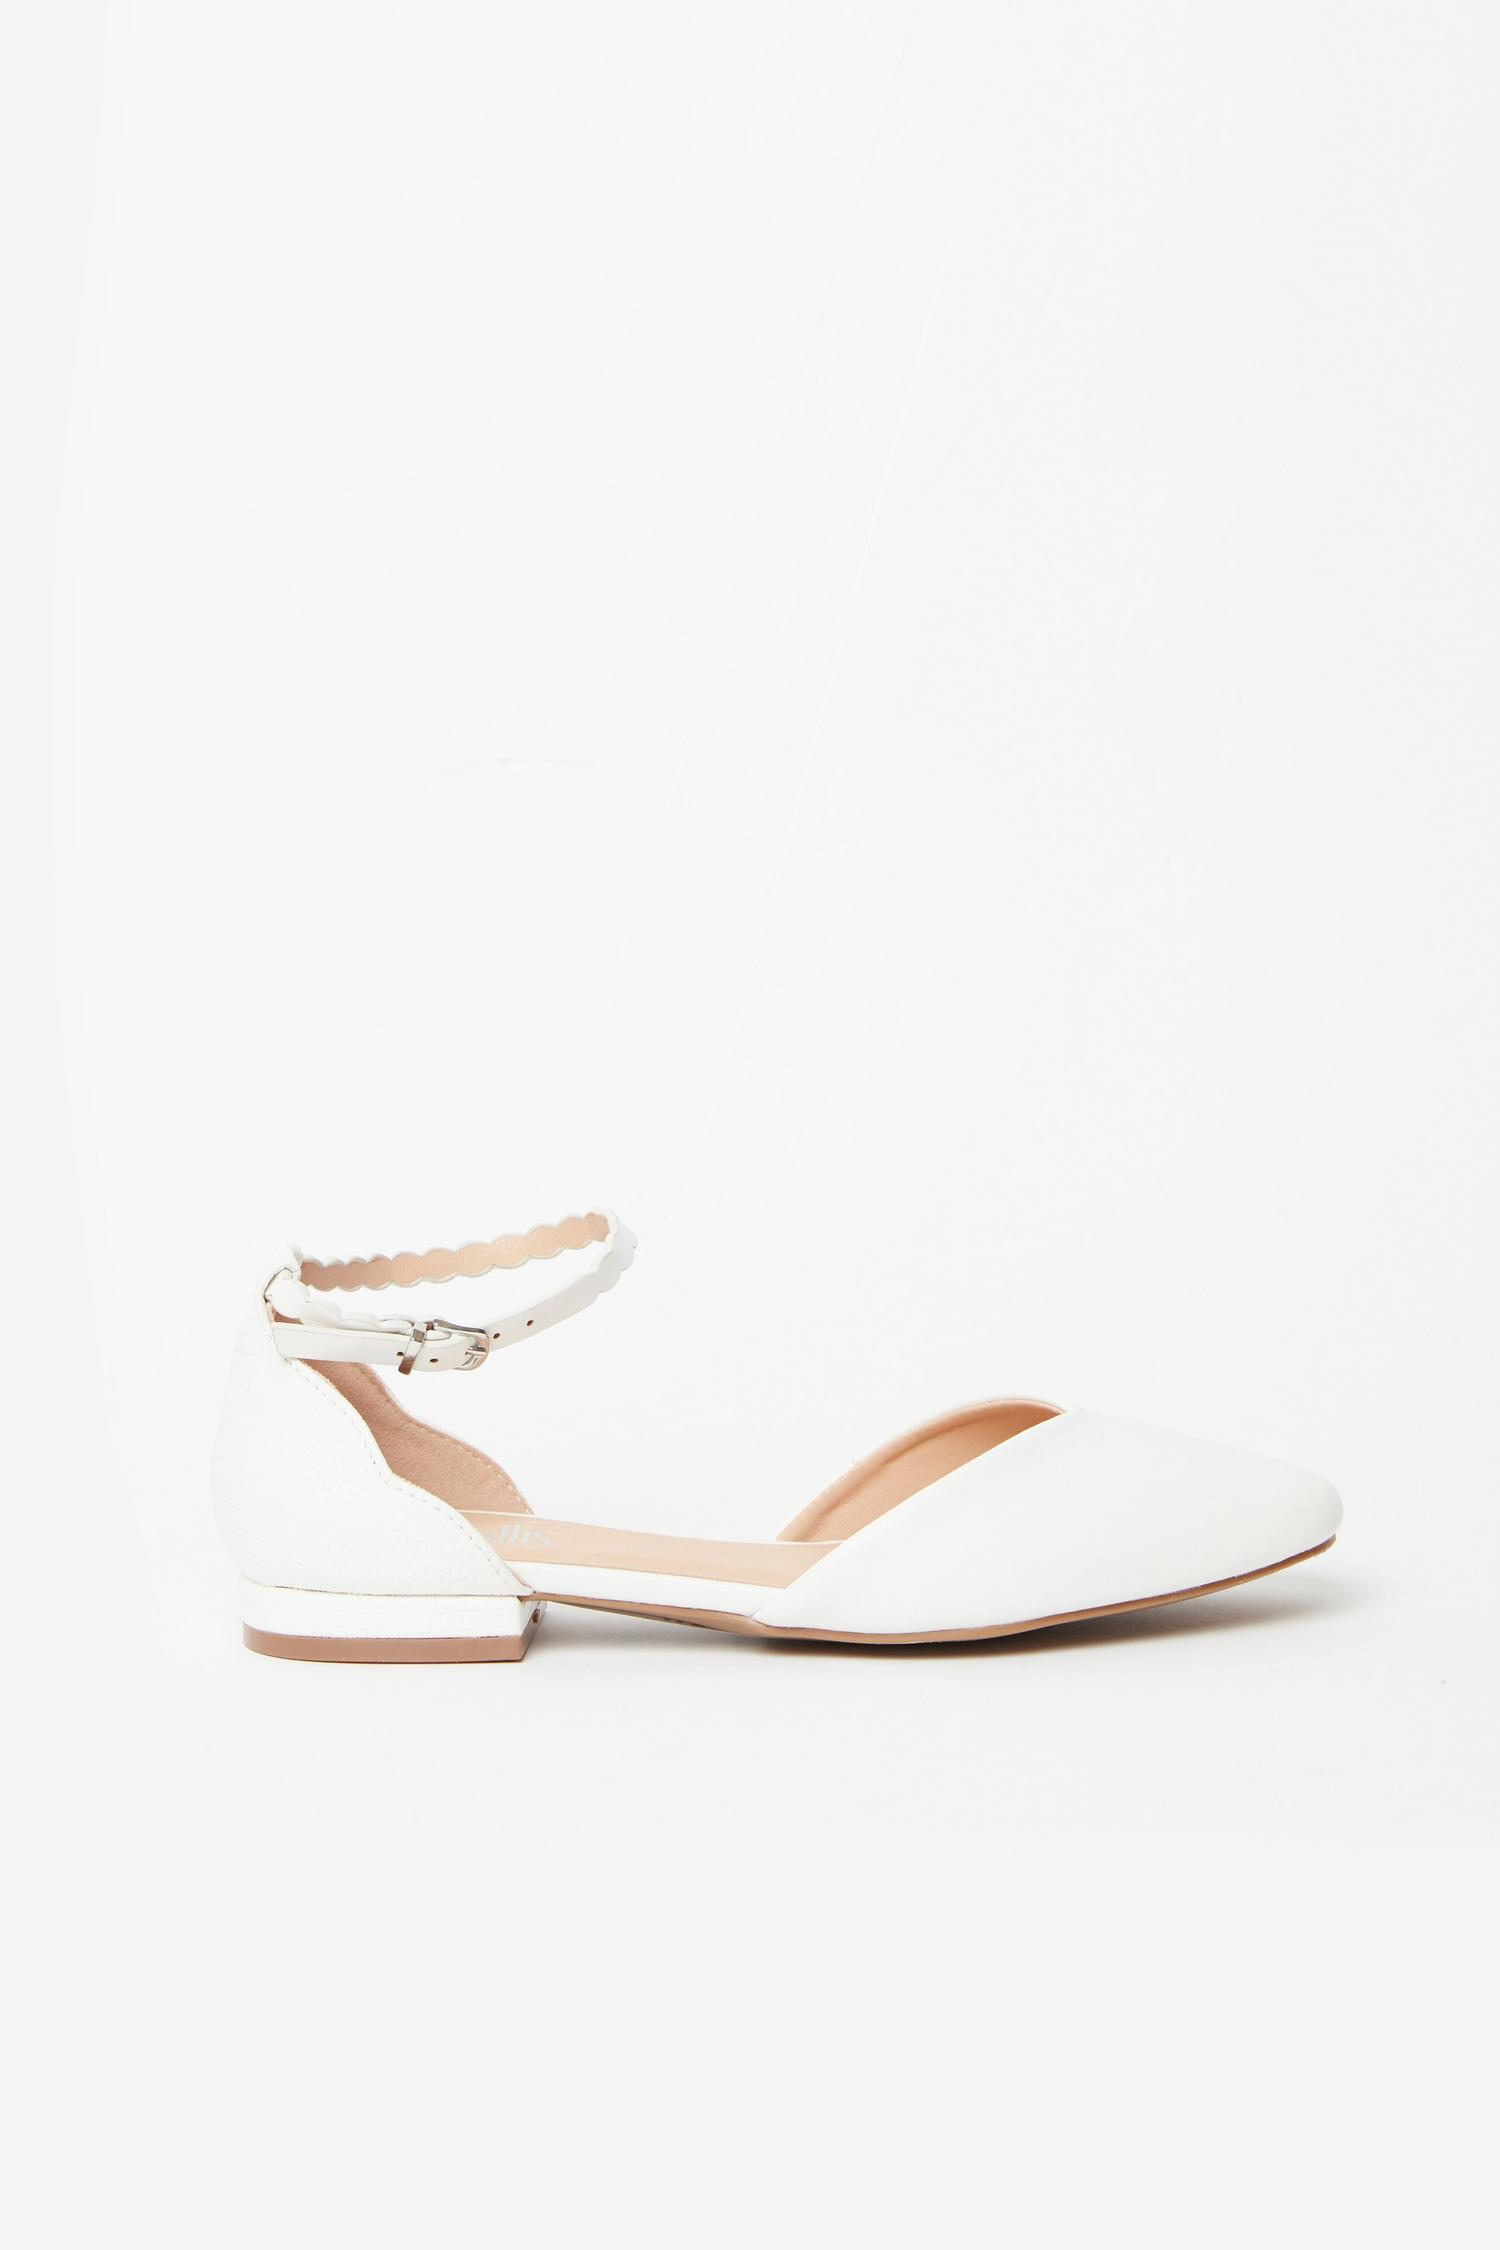 173 White Ankle Strap Shoe image number 2